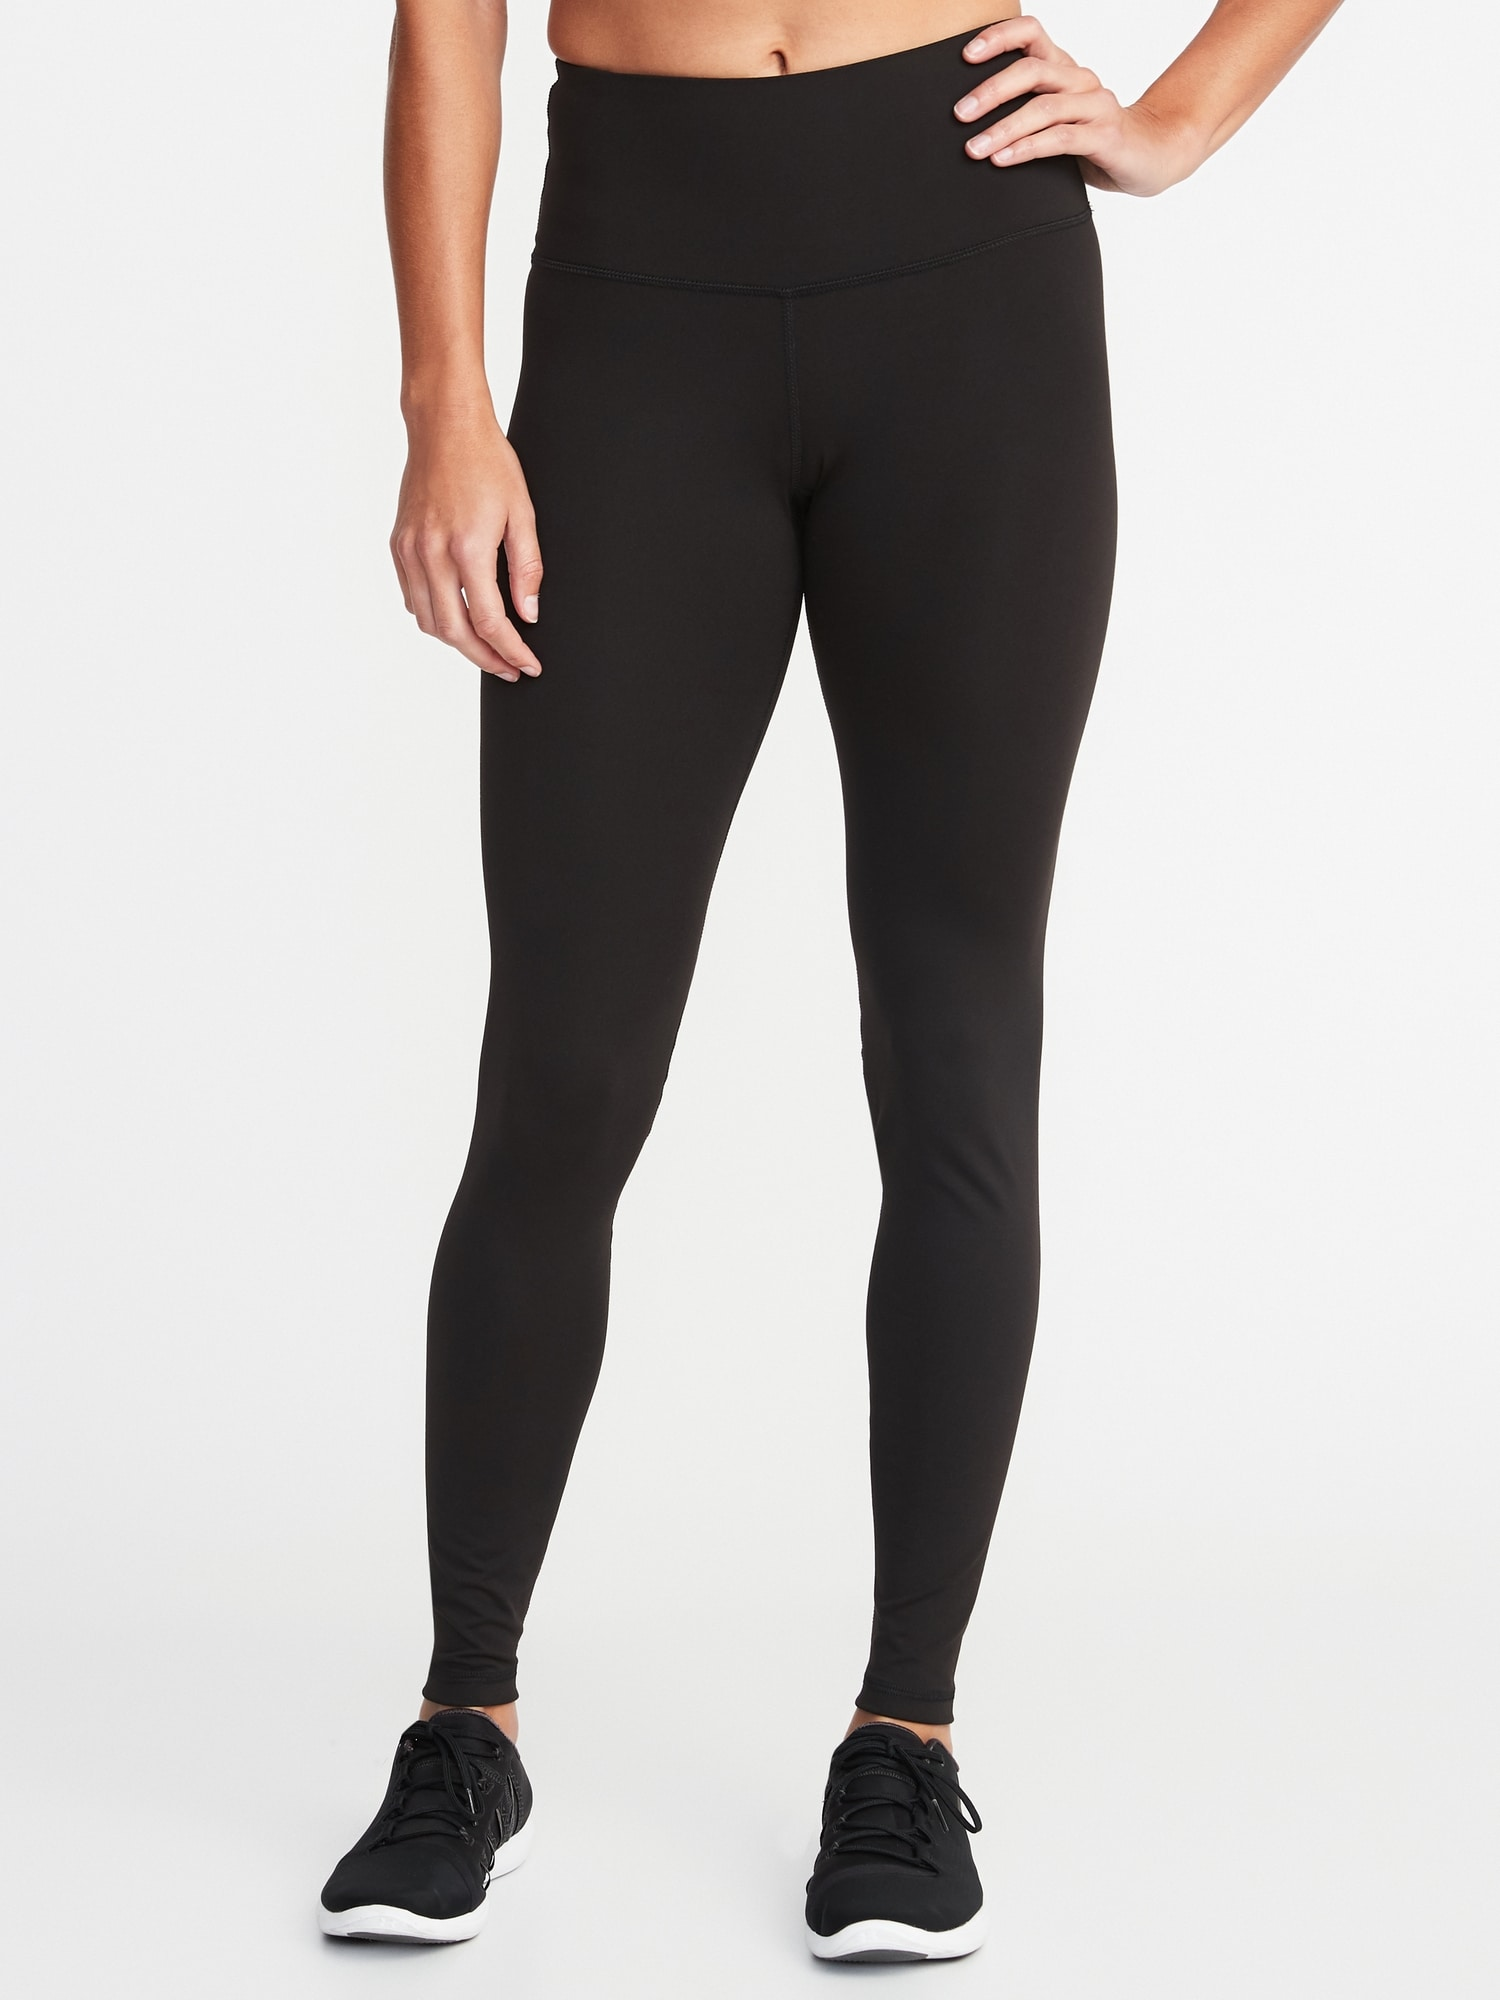 High-Rise Elevate Compression Leggings for Women  a4091a4ba5b7